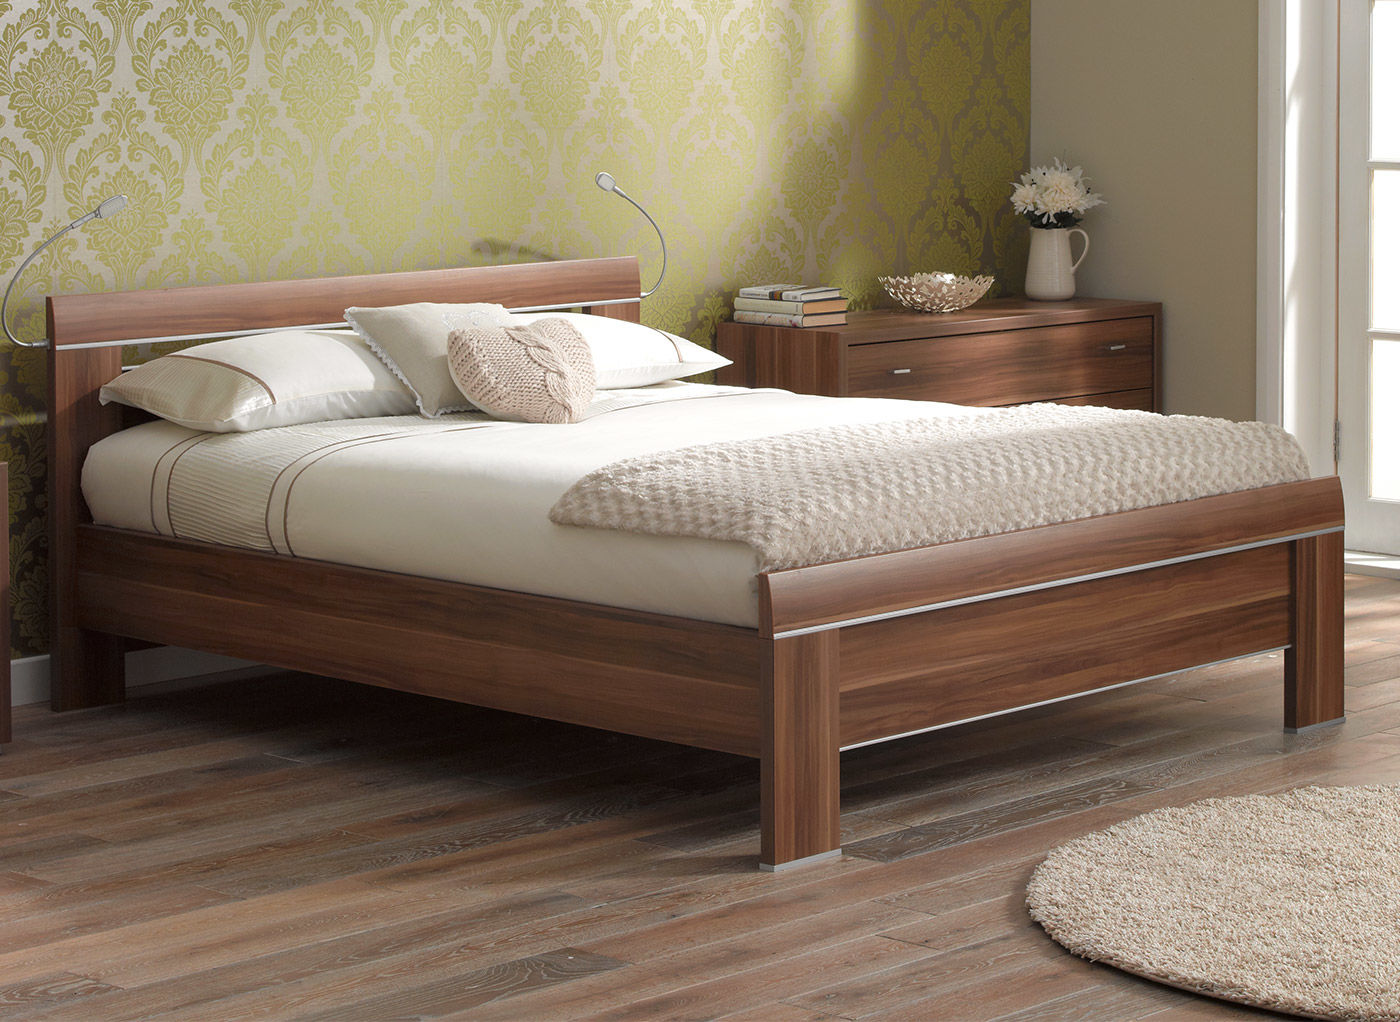 wooden beds berkeley bed frame walnut QHKSKLC